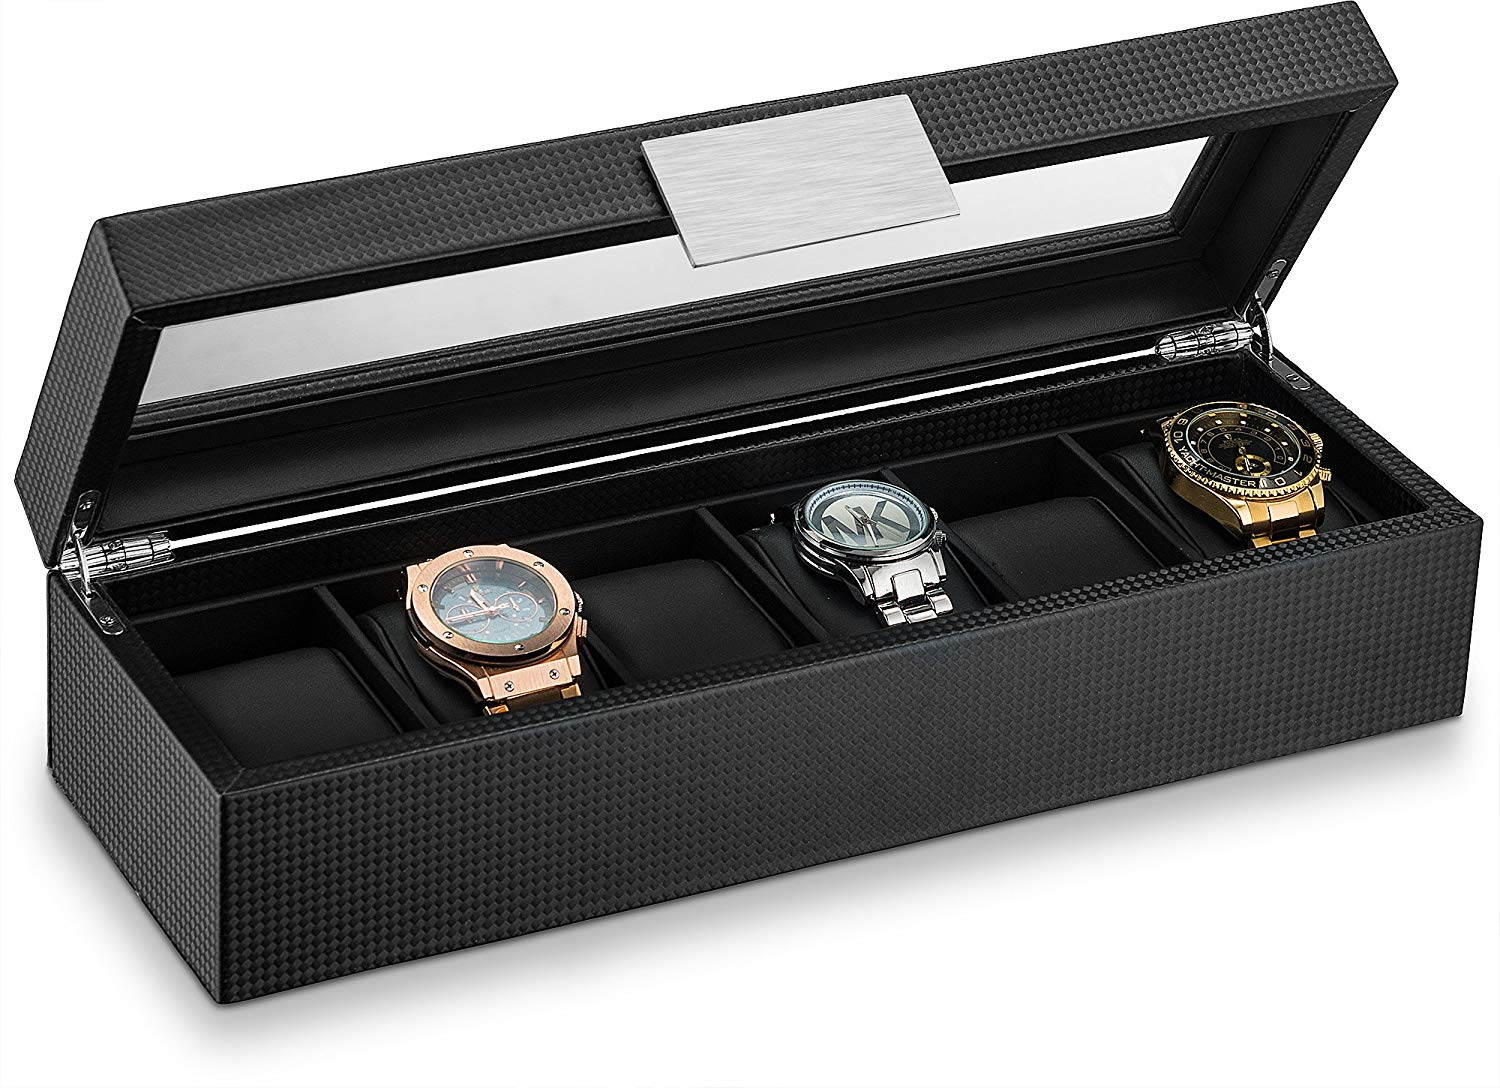 Triton Luxury Carbon Fibre 6 Slot Luxury Watch Organiser | Monthly Madness